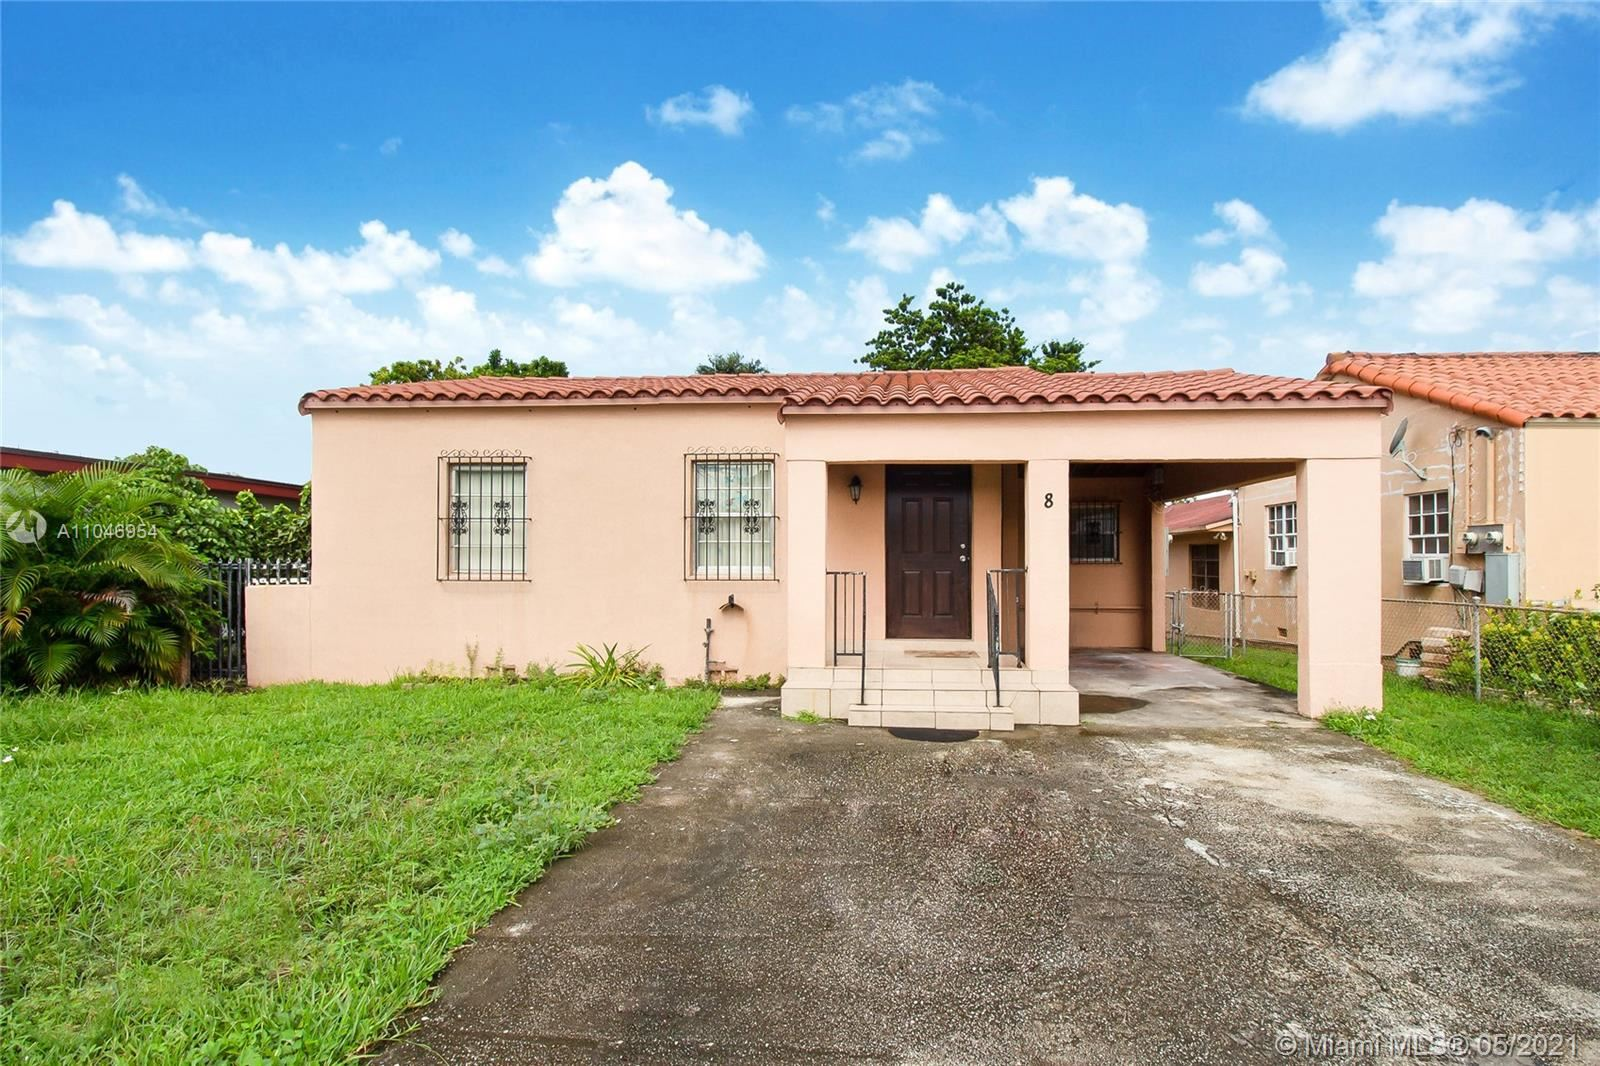 8 NW 33rd Ave, Miami, FL 33125 - #: A11046954